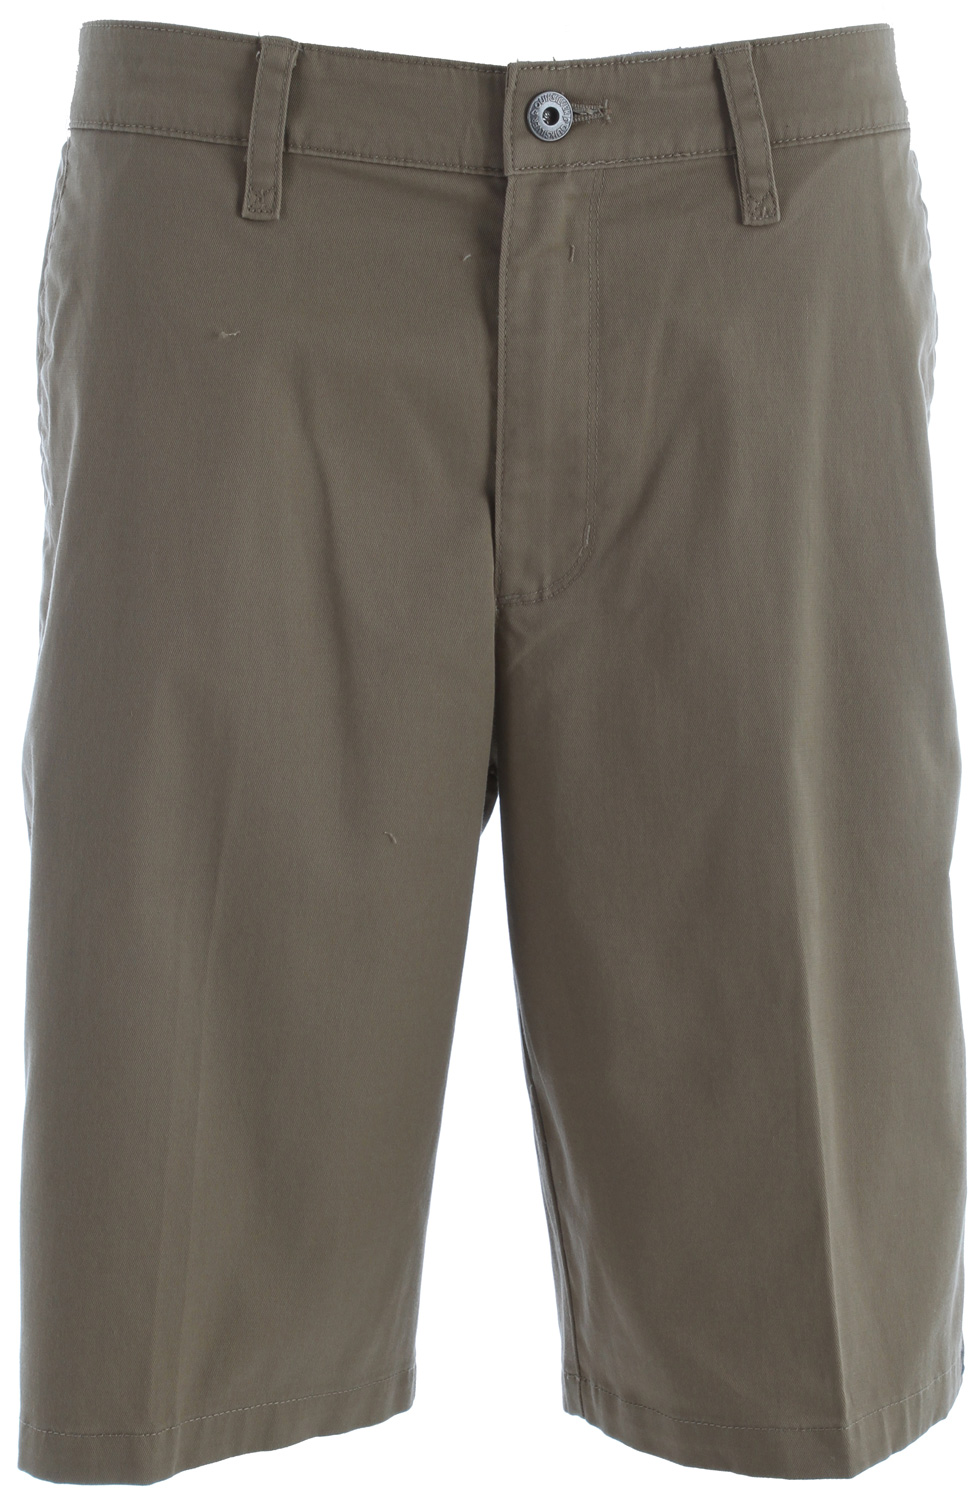 "Surf Key Features of the Quiksilver Union Shorts: Regular 22"" outseam 60% cotton 39% polyester 1% spandex Small box woven label at bottom hem Binding at front pocket opening Garment wash with silicone softener - $31.95"